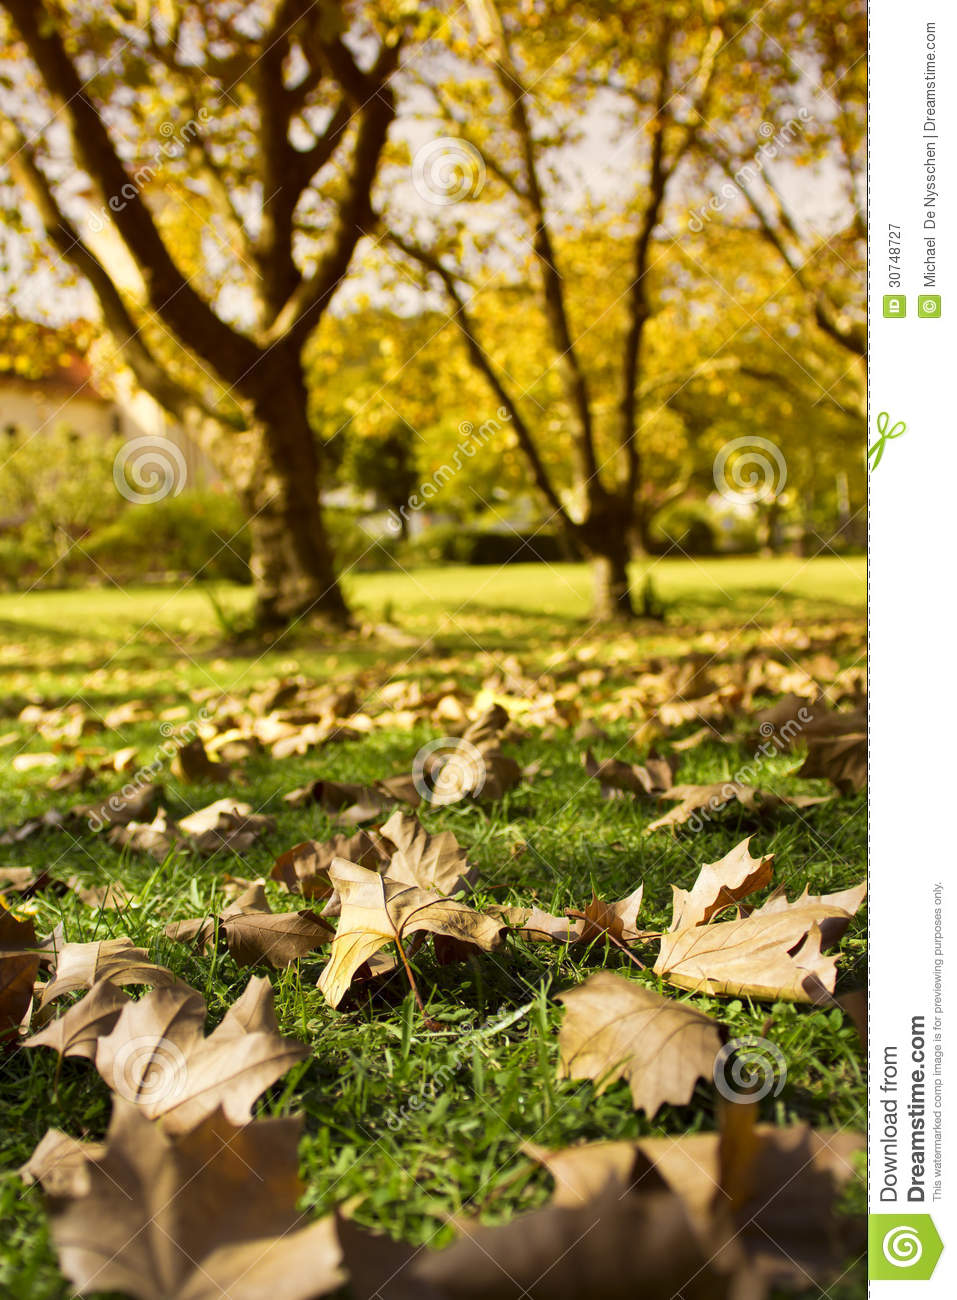 Autumn leaves on green lawn with trees in background